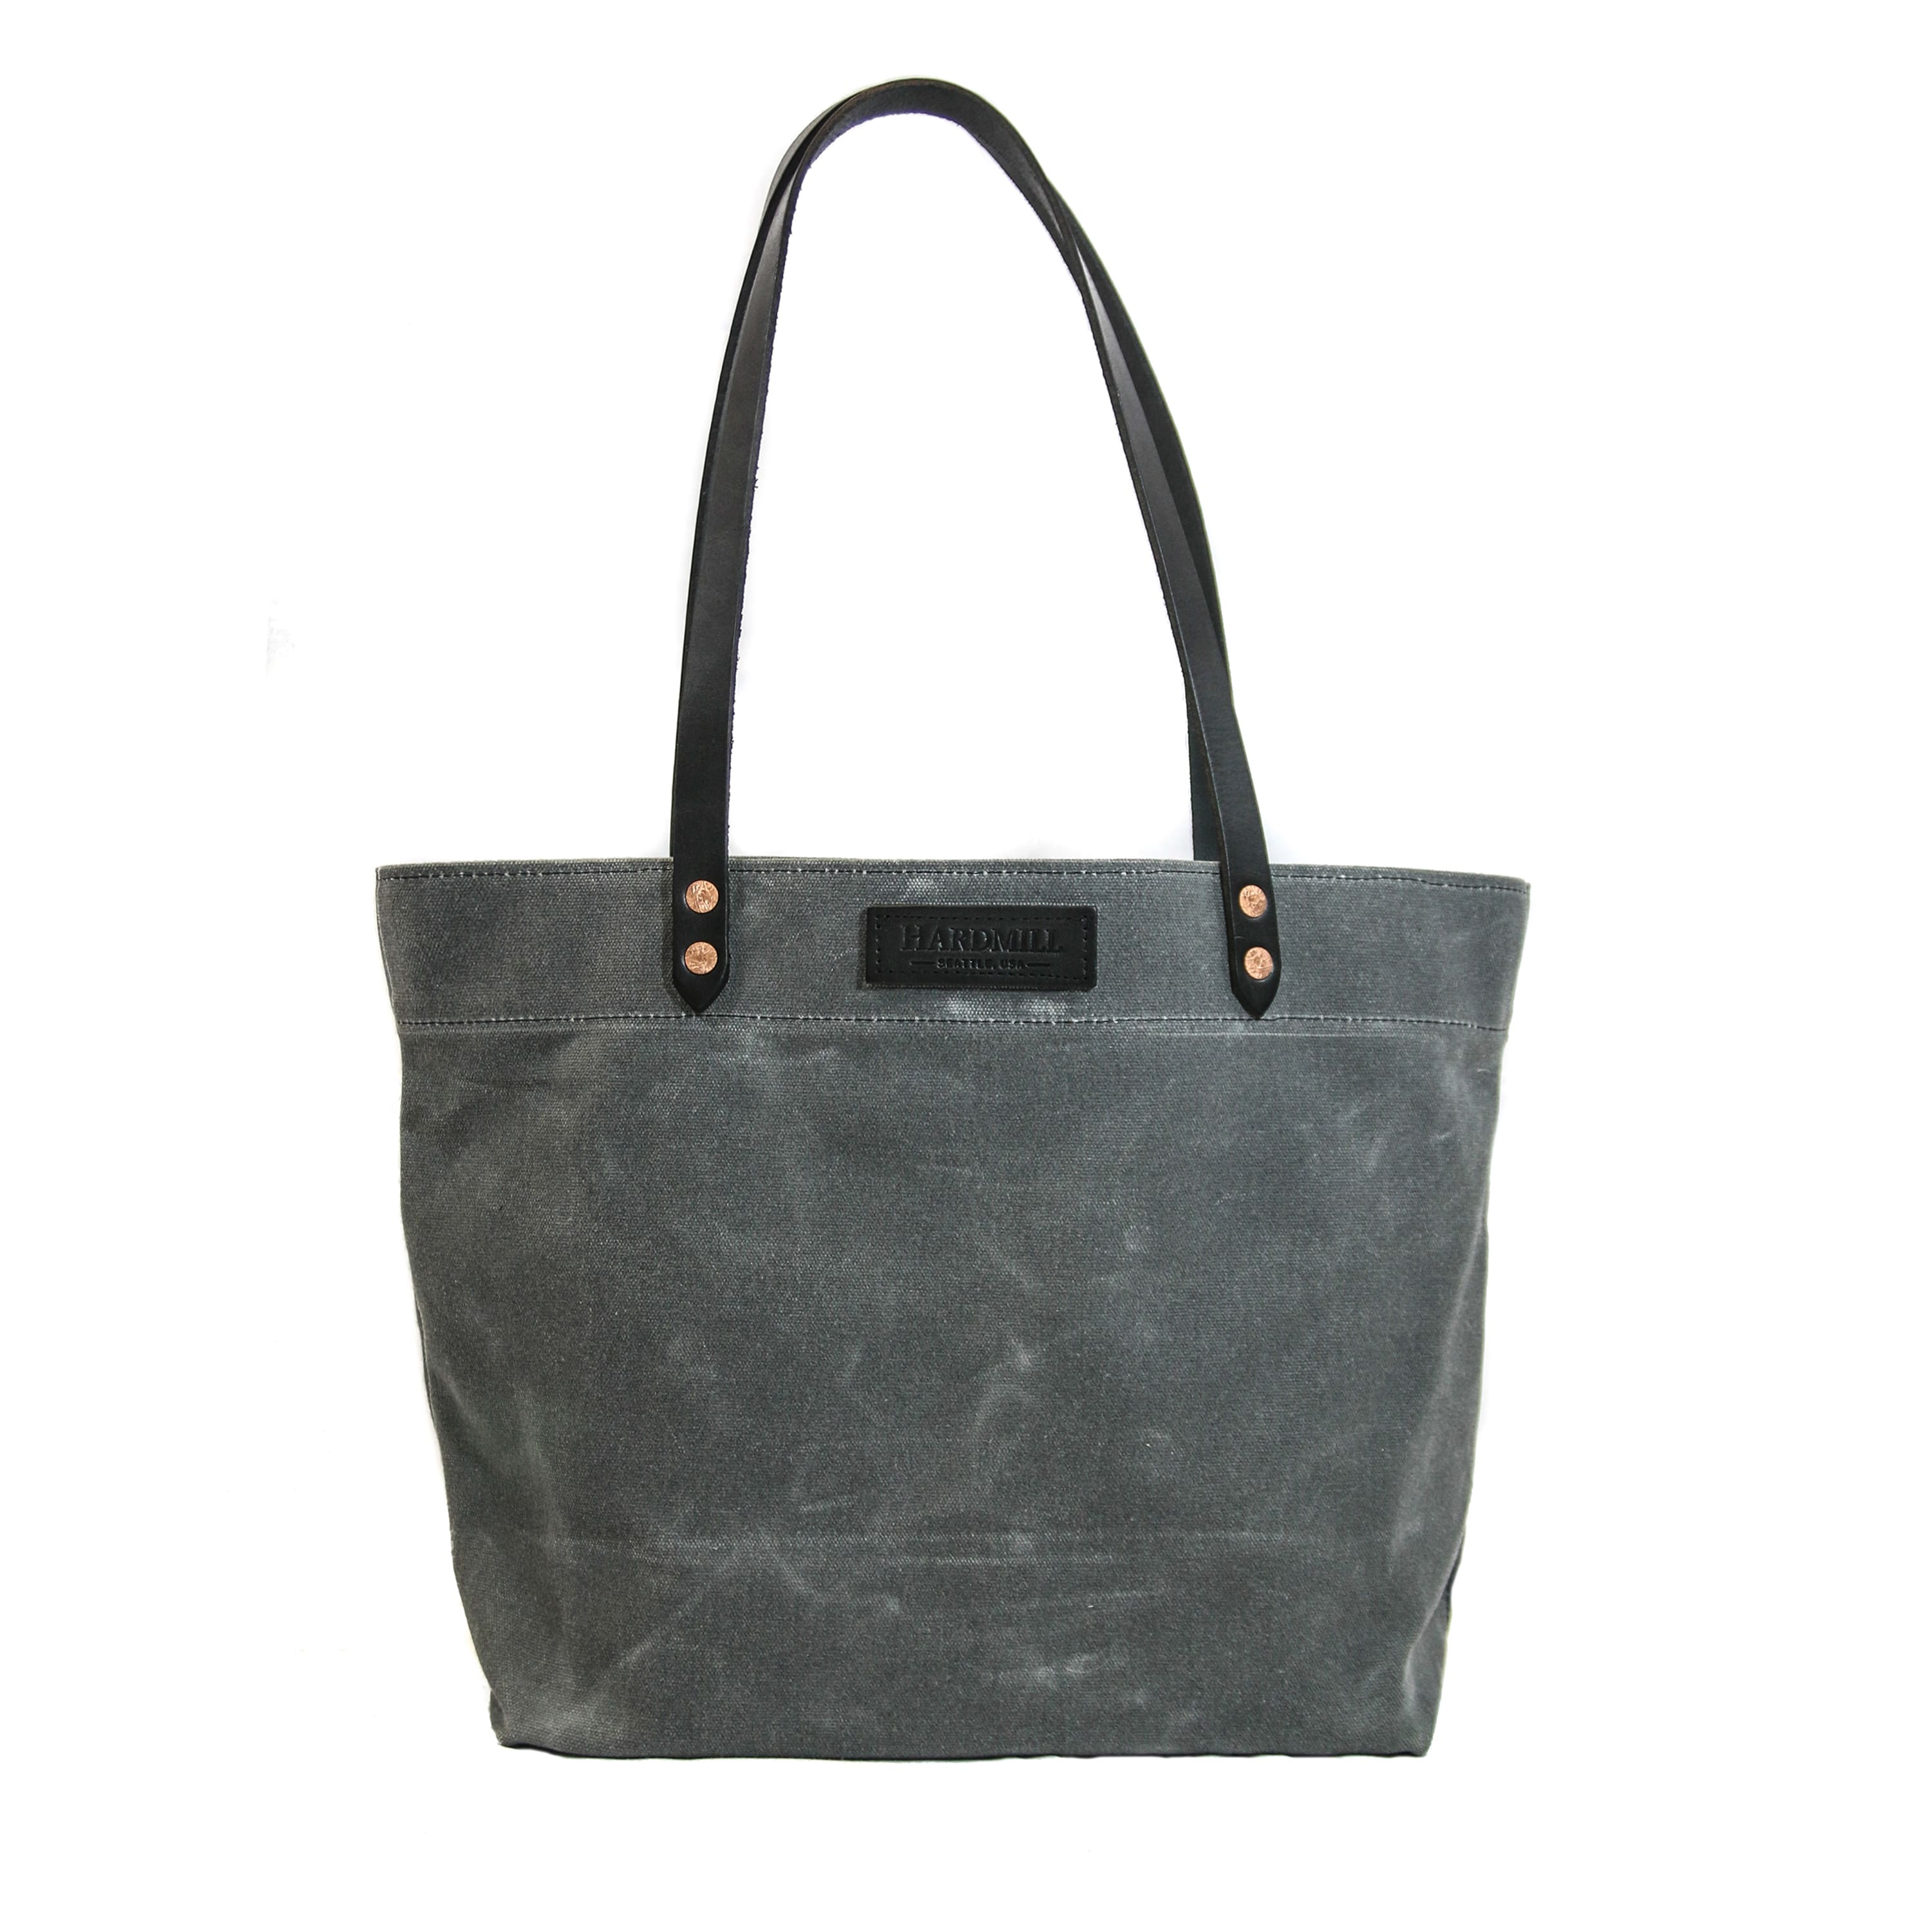 Hardmill waxed canvas/leather totes 12-hr BOGO sale. Made in USA.